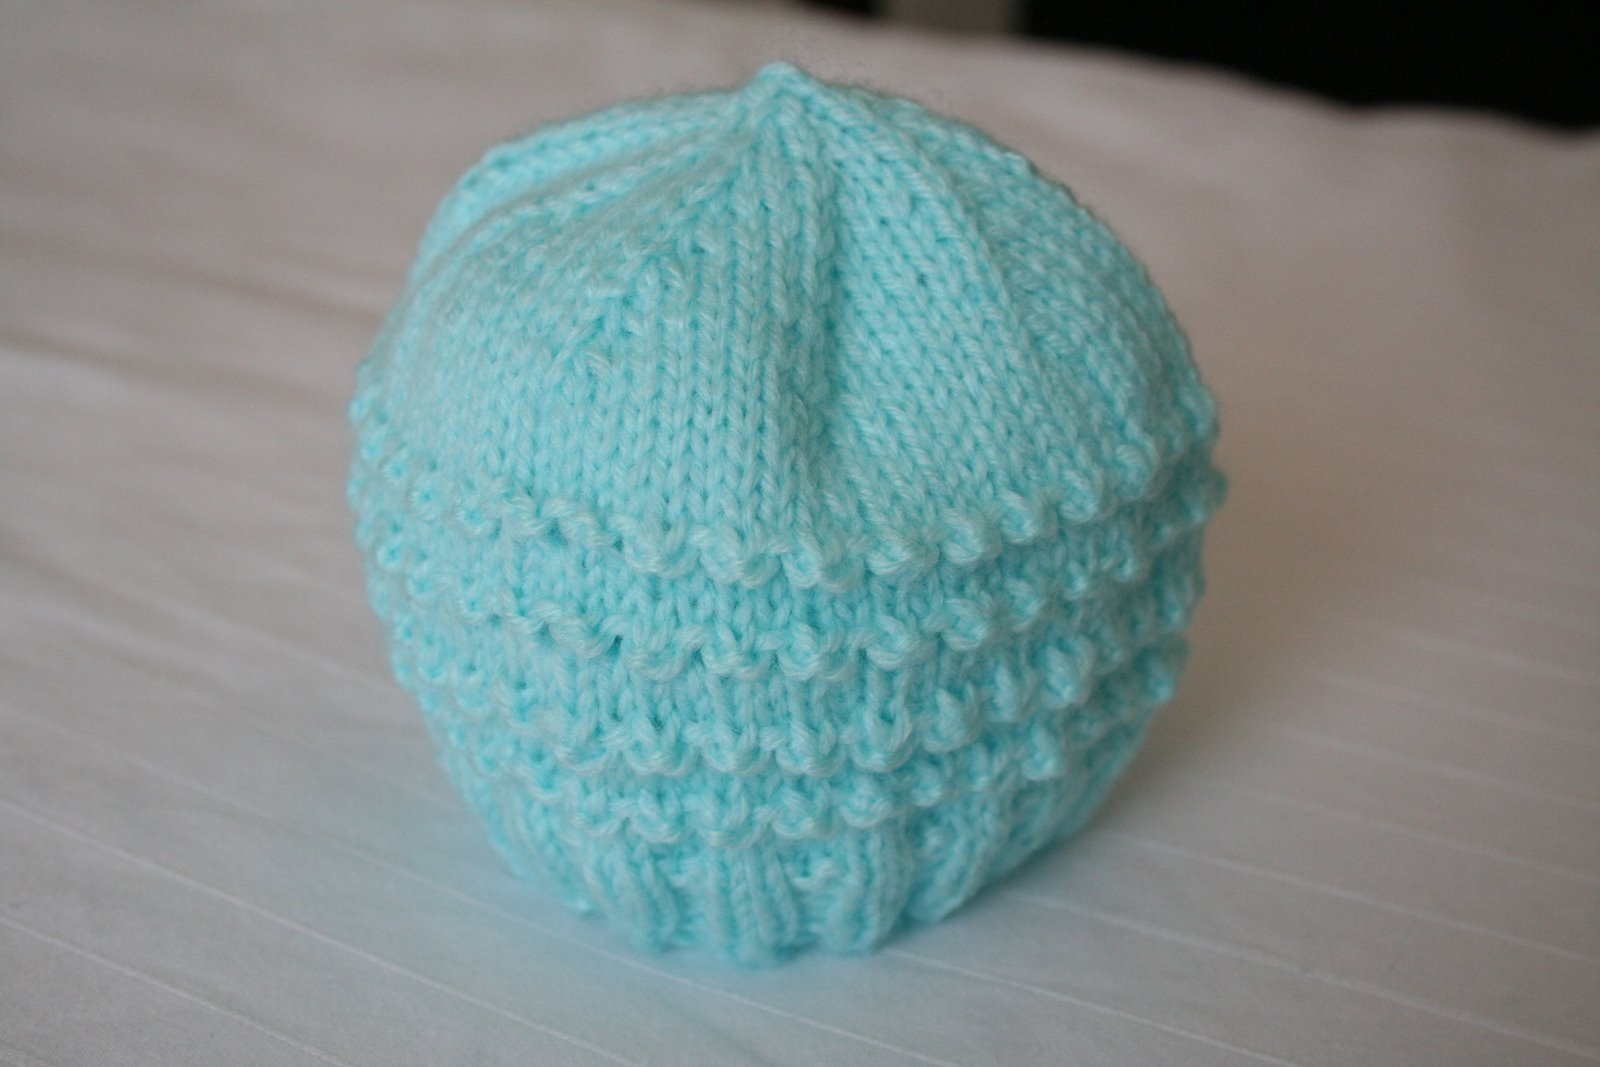 Preemie Knitting Patterns Free : Free Preemie Knitting Patterns images